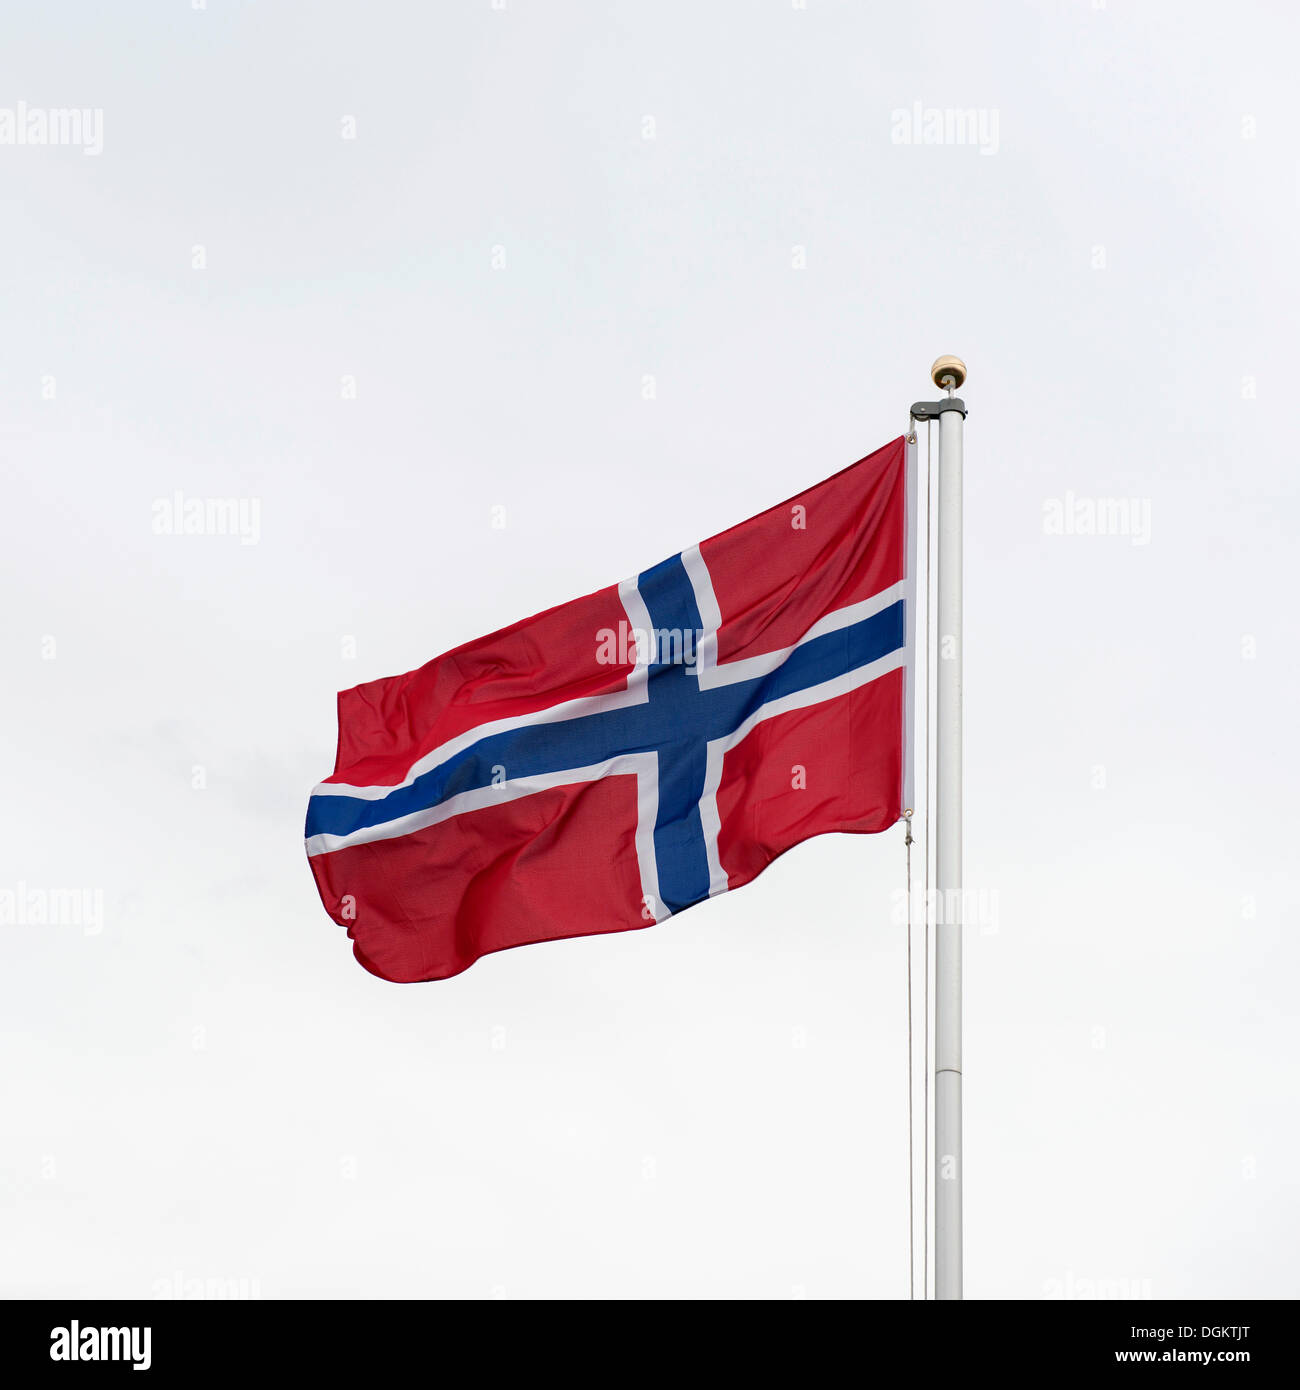 A waving flag of Norway - Stock Image